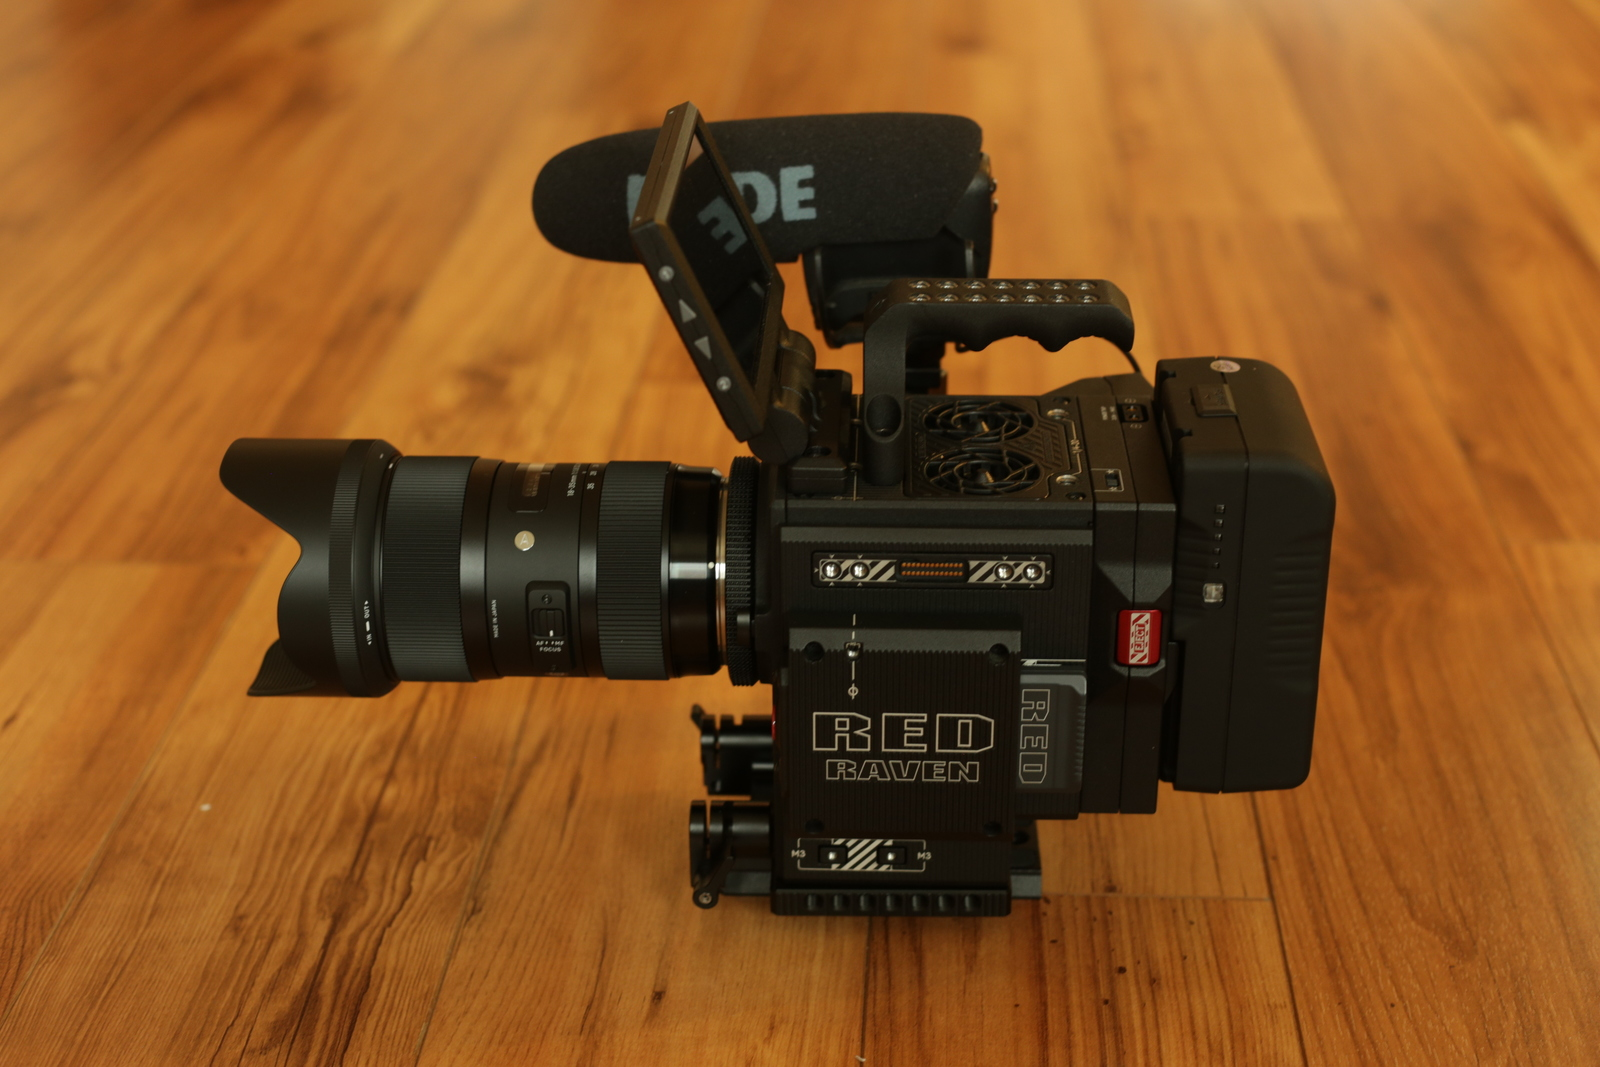 Red Raven Specs Rent A Red Raven Dragon 4 5k Package 2 With Lens Mic Tripod Best Prices Sharegrid Los Angeles